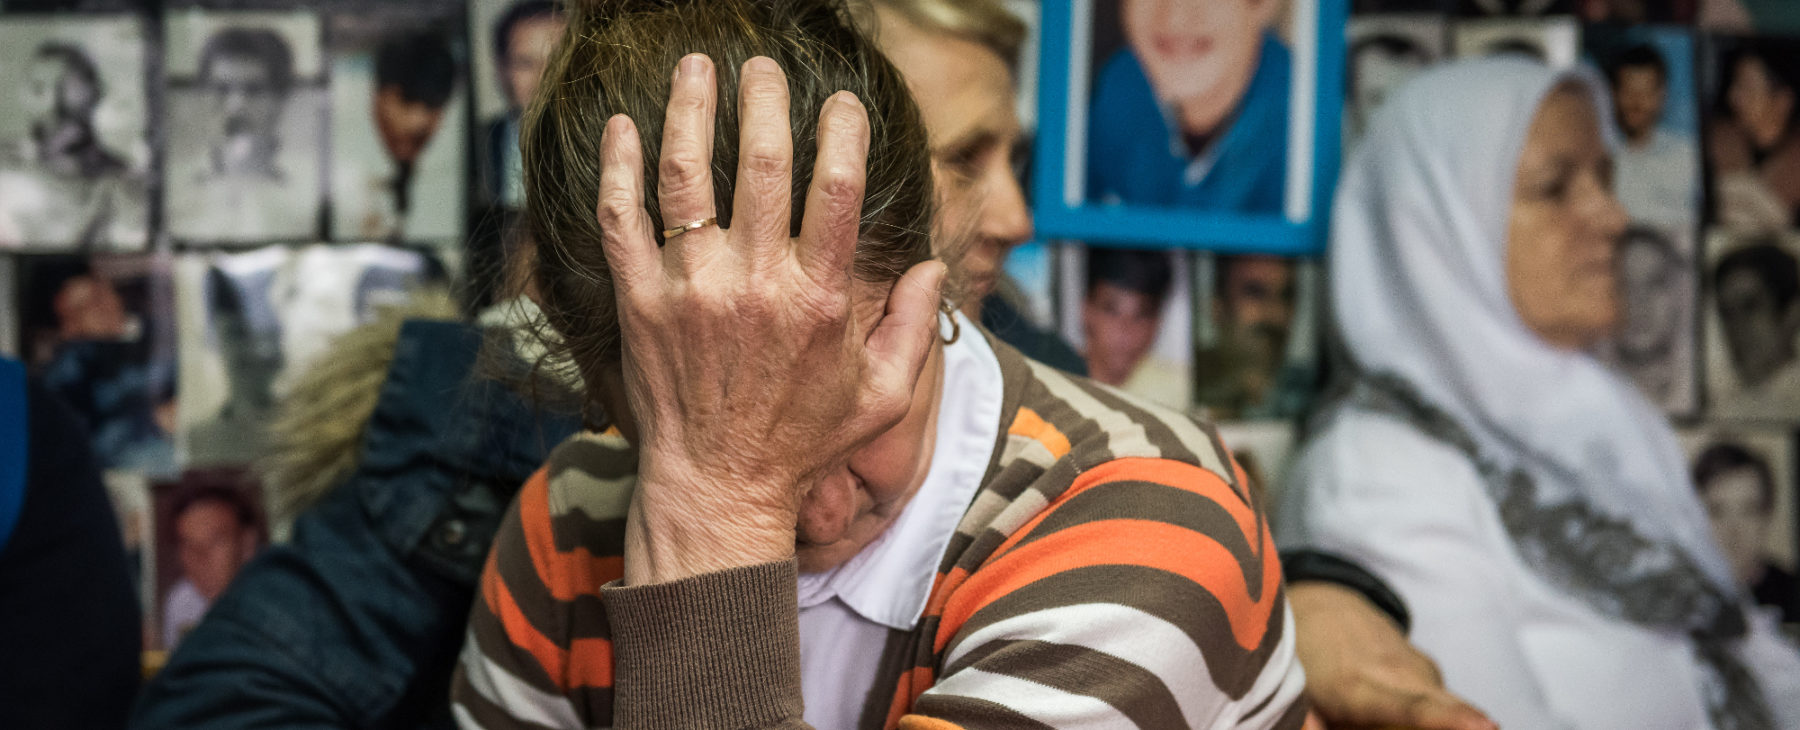 BiH: Letter addresses problem of wartime victims paying court fees